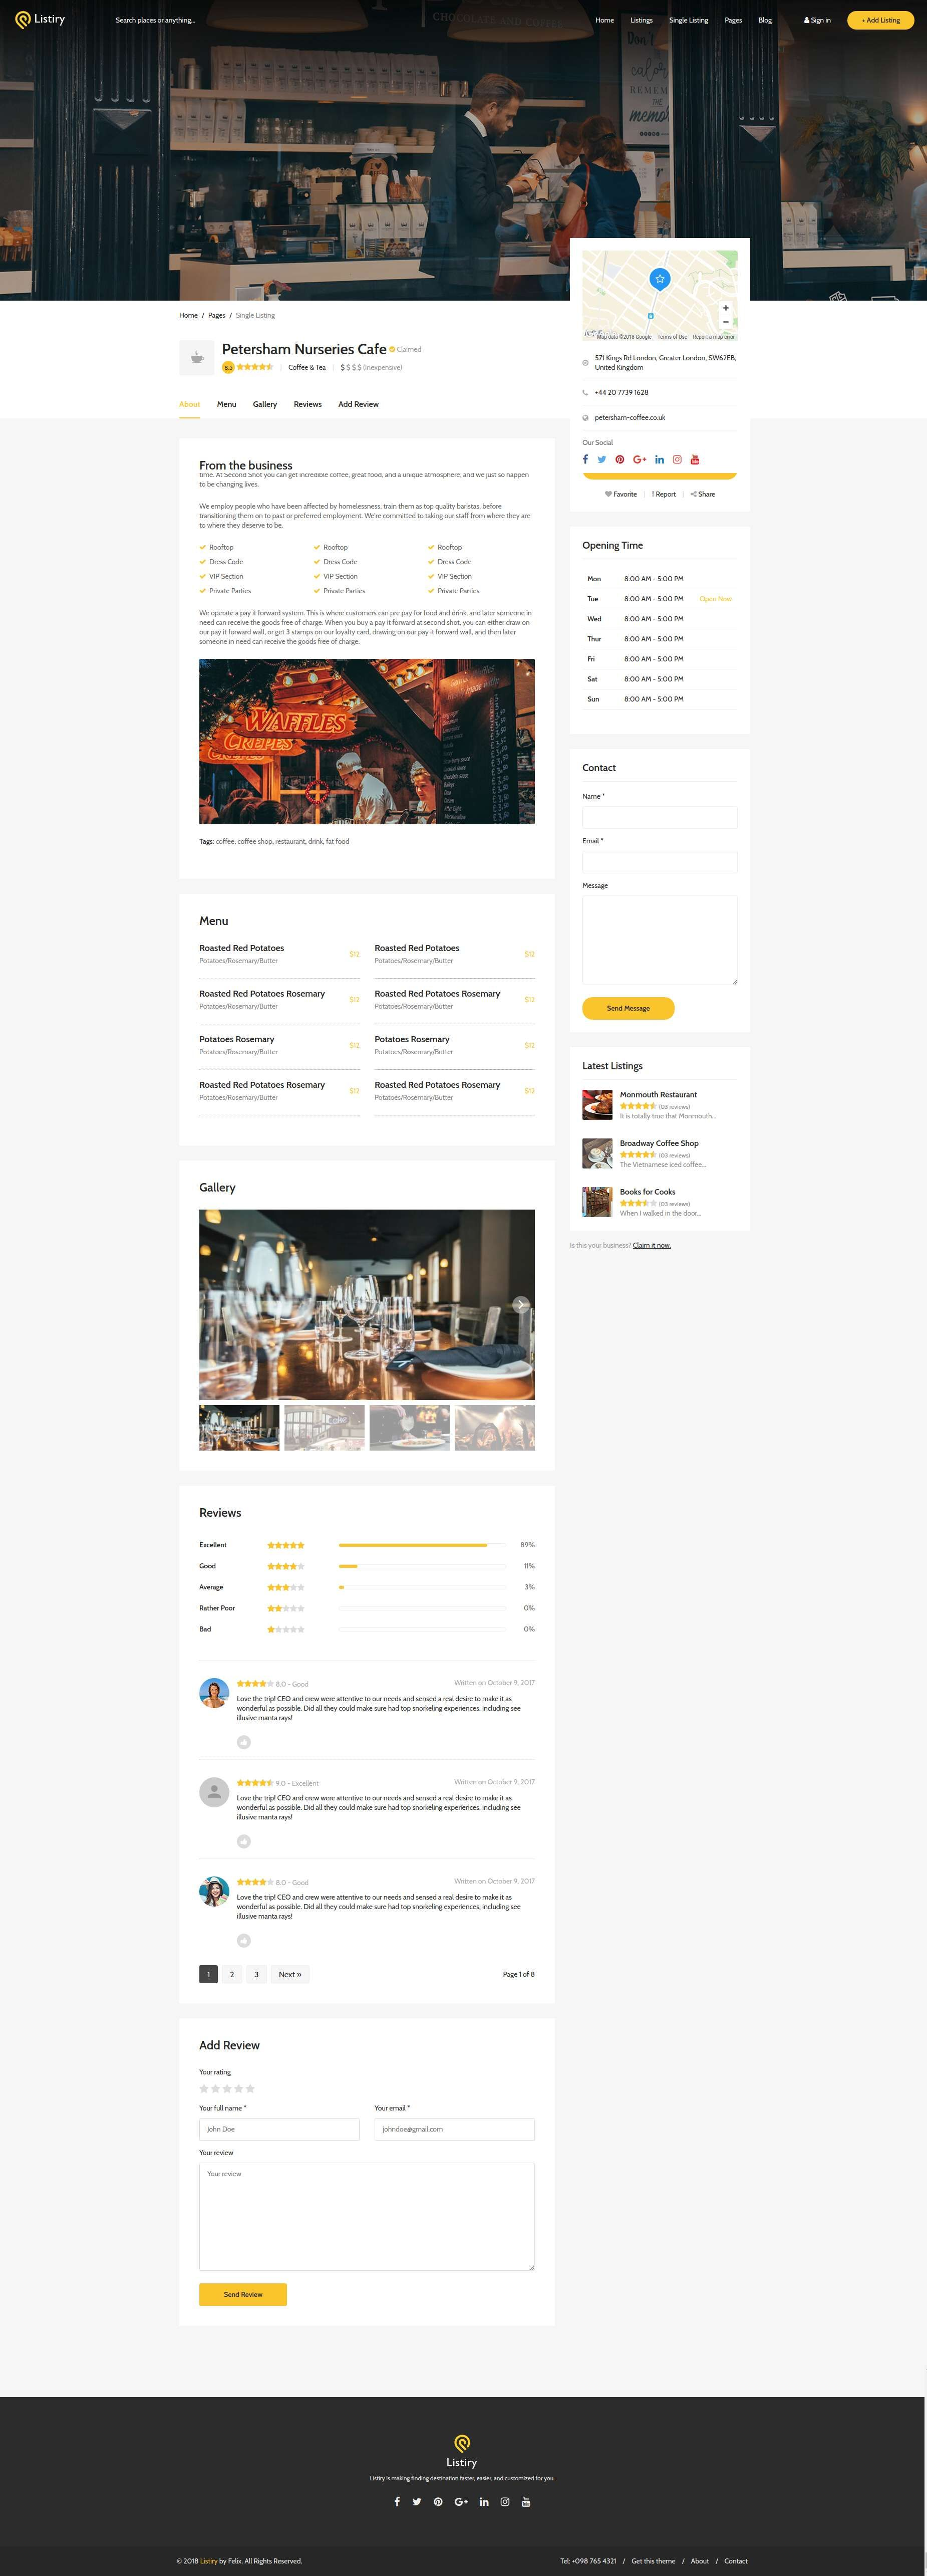 Listiry - Directory & Listing Template #airbnb, #catalog